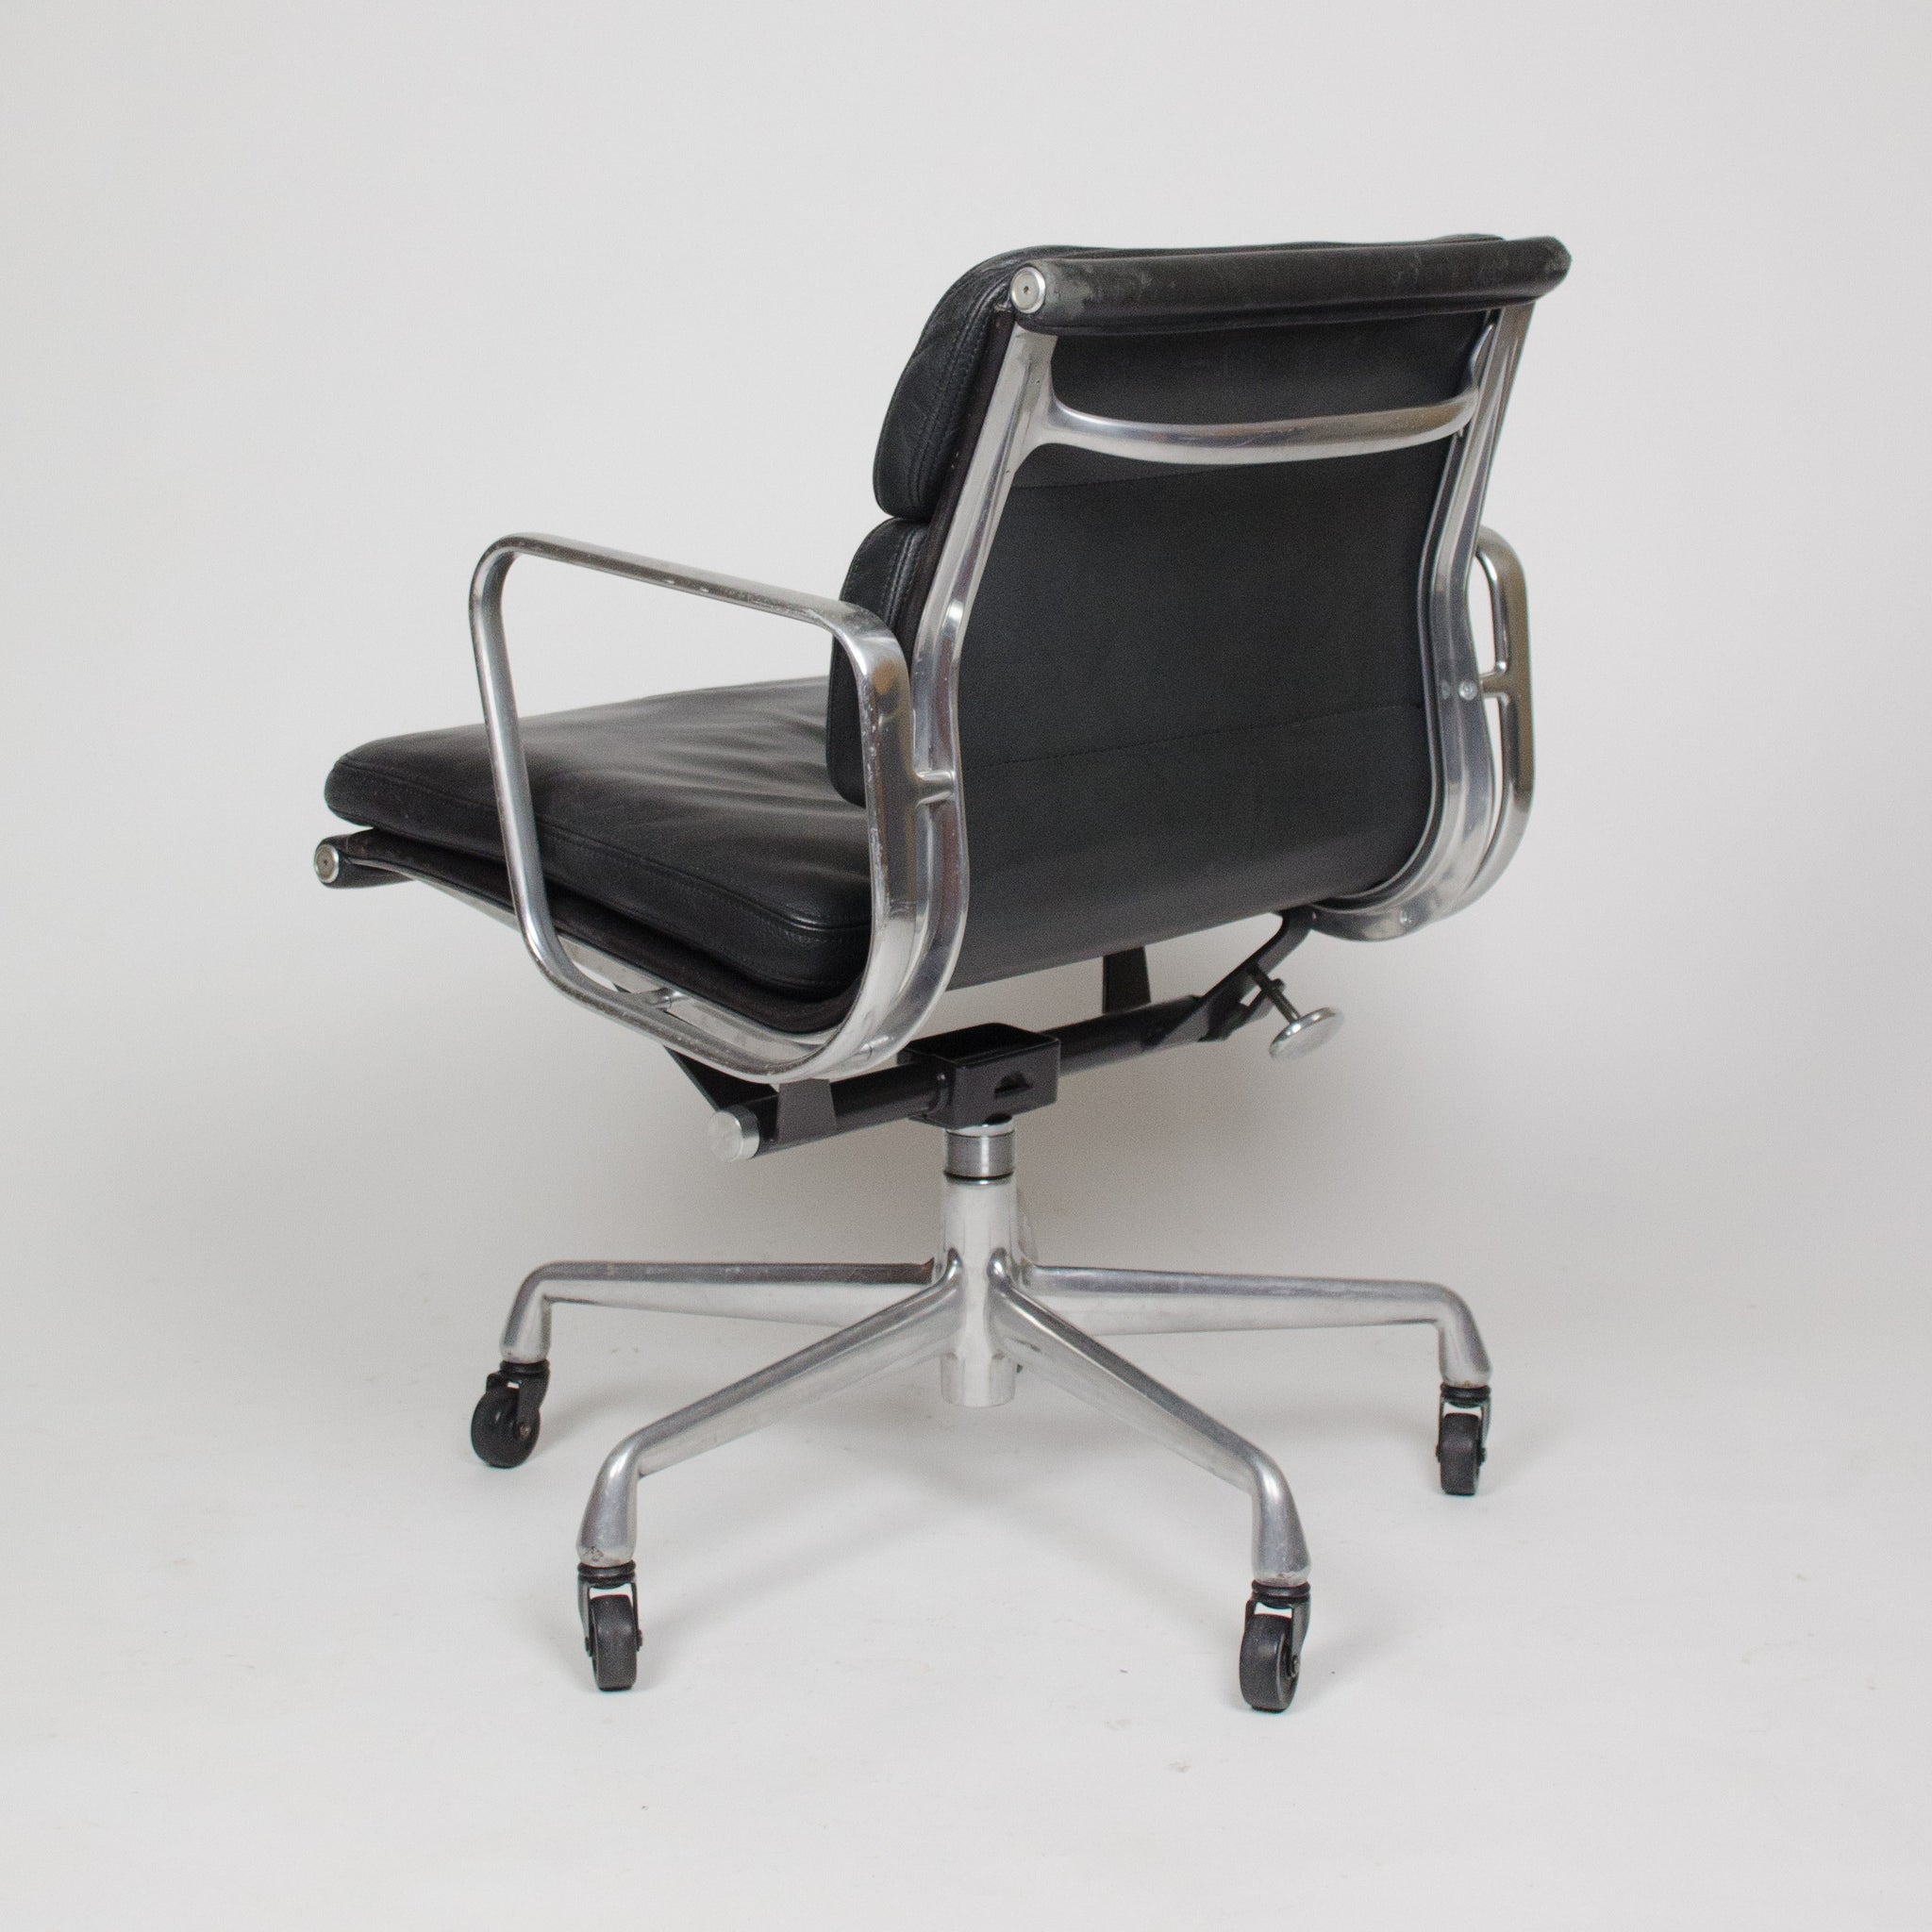 SOLD Eames Herman Miller Vintage Leather Low Soft Pad Aluminum Desk Chairs